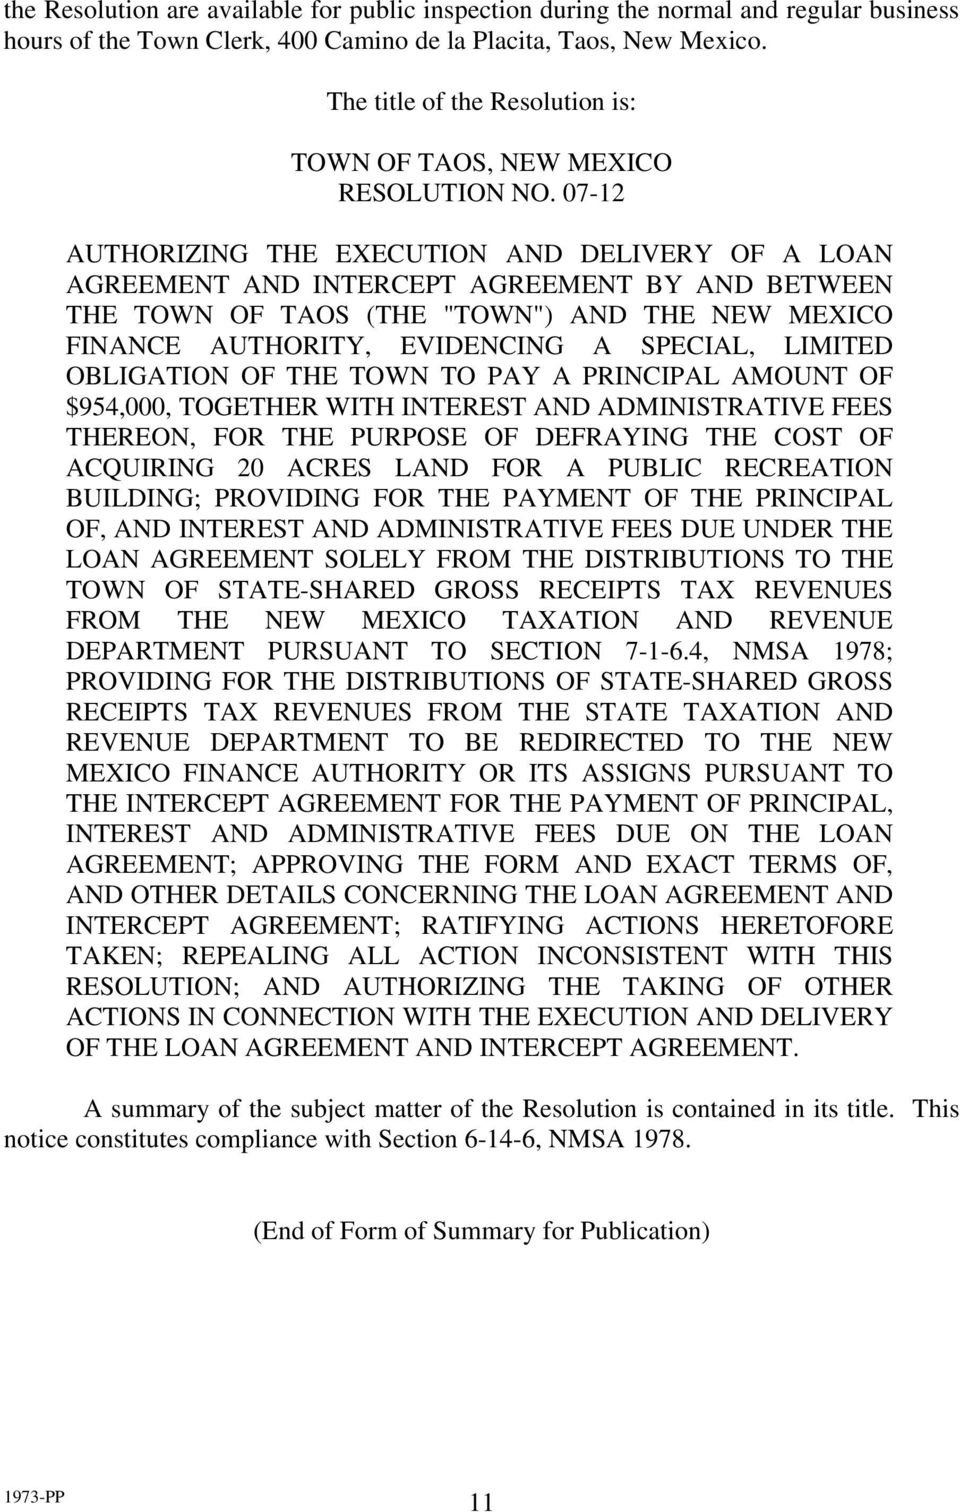 "07-12 AUTHORIZING THE EXECUTION AND DELIVERY OF A LOAN AGREEMENT AND INTERCEPT AGREEMENT BY AND BETWEEN THE TOWN OF TAOS (THE ""TOWN"") AND THE NEW MEXICO FINANCE AUTHORITY, EVIDENCING A SPECIAL,"